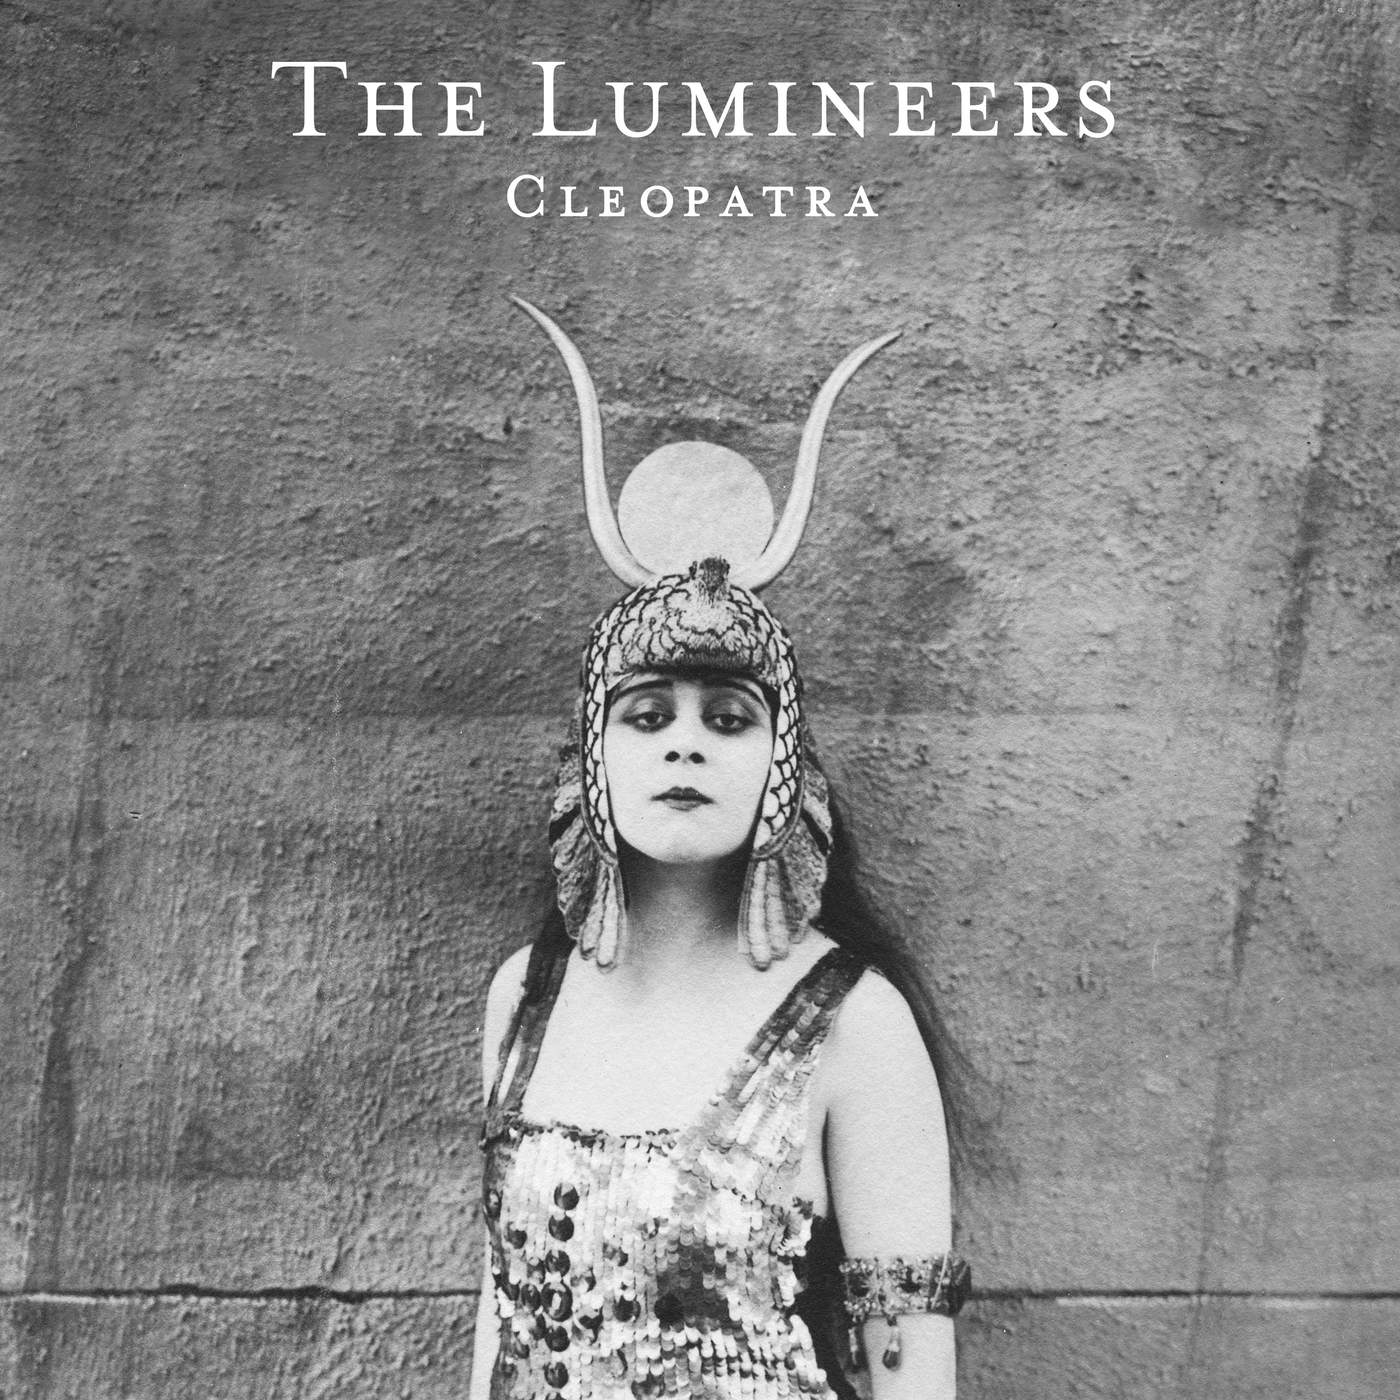 The Lumineers - Cleopatra (Deluxe Version) Cover